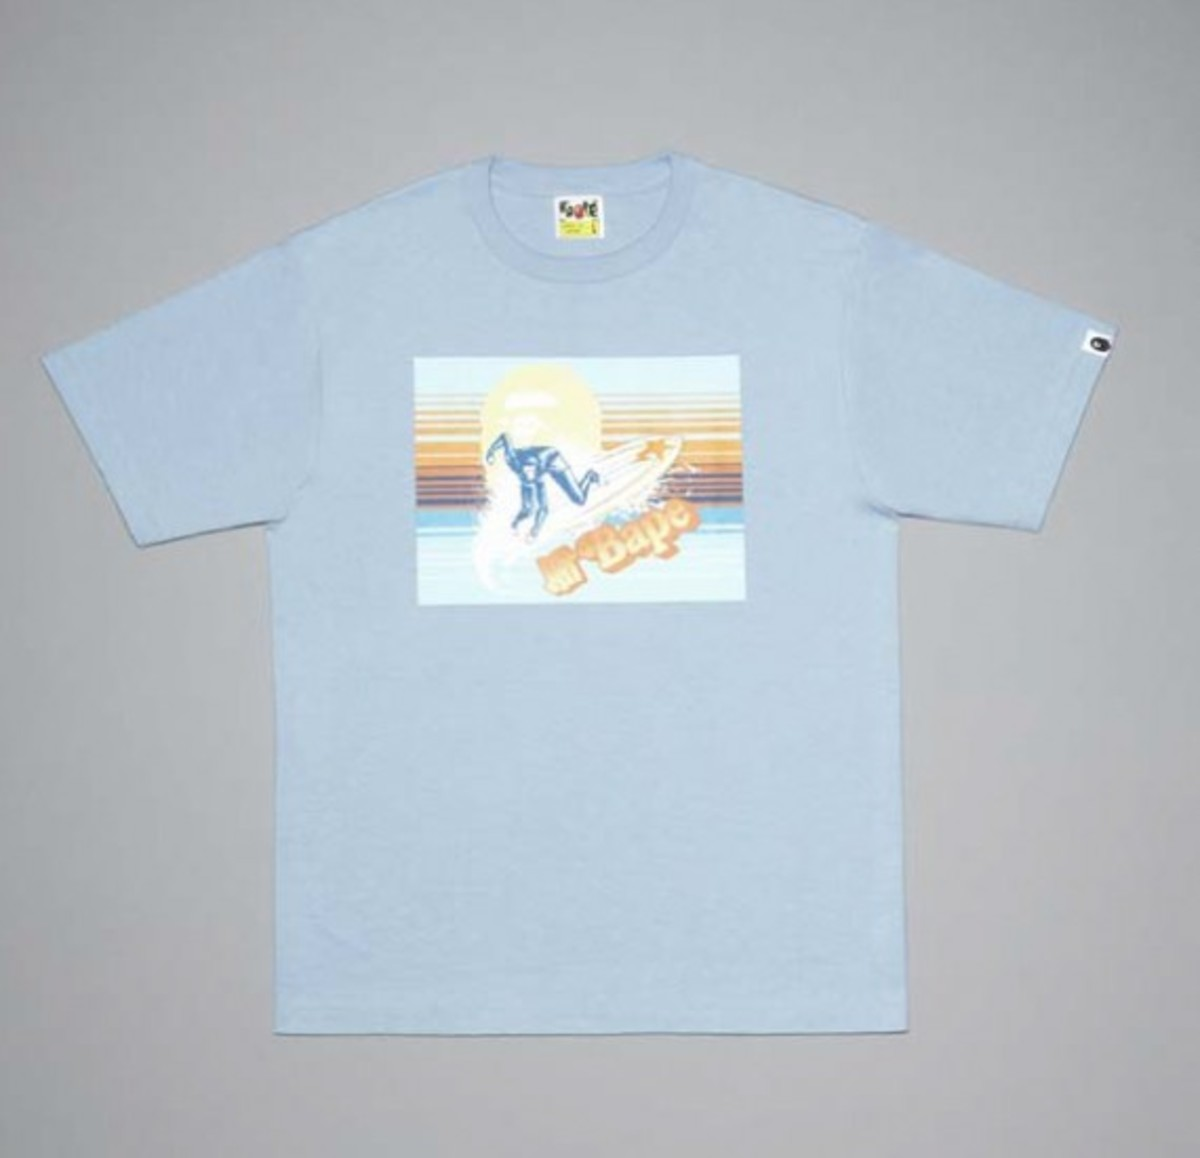 a-bathing-ape-undefeated-summer-2012-collection-release-info-05